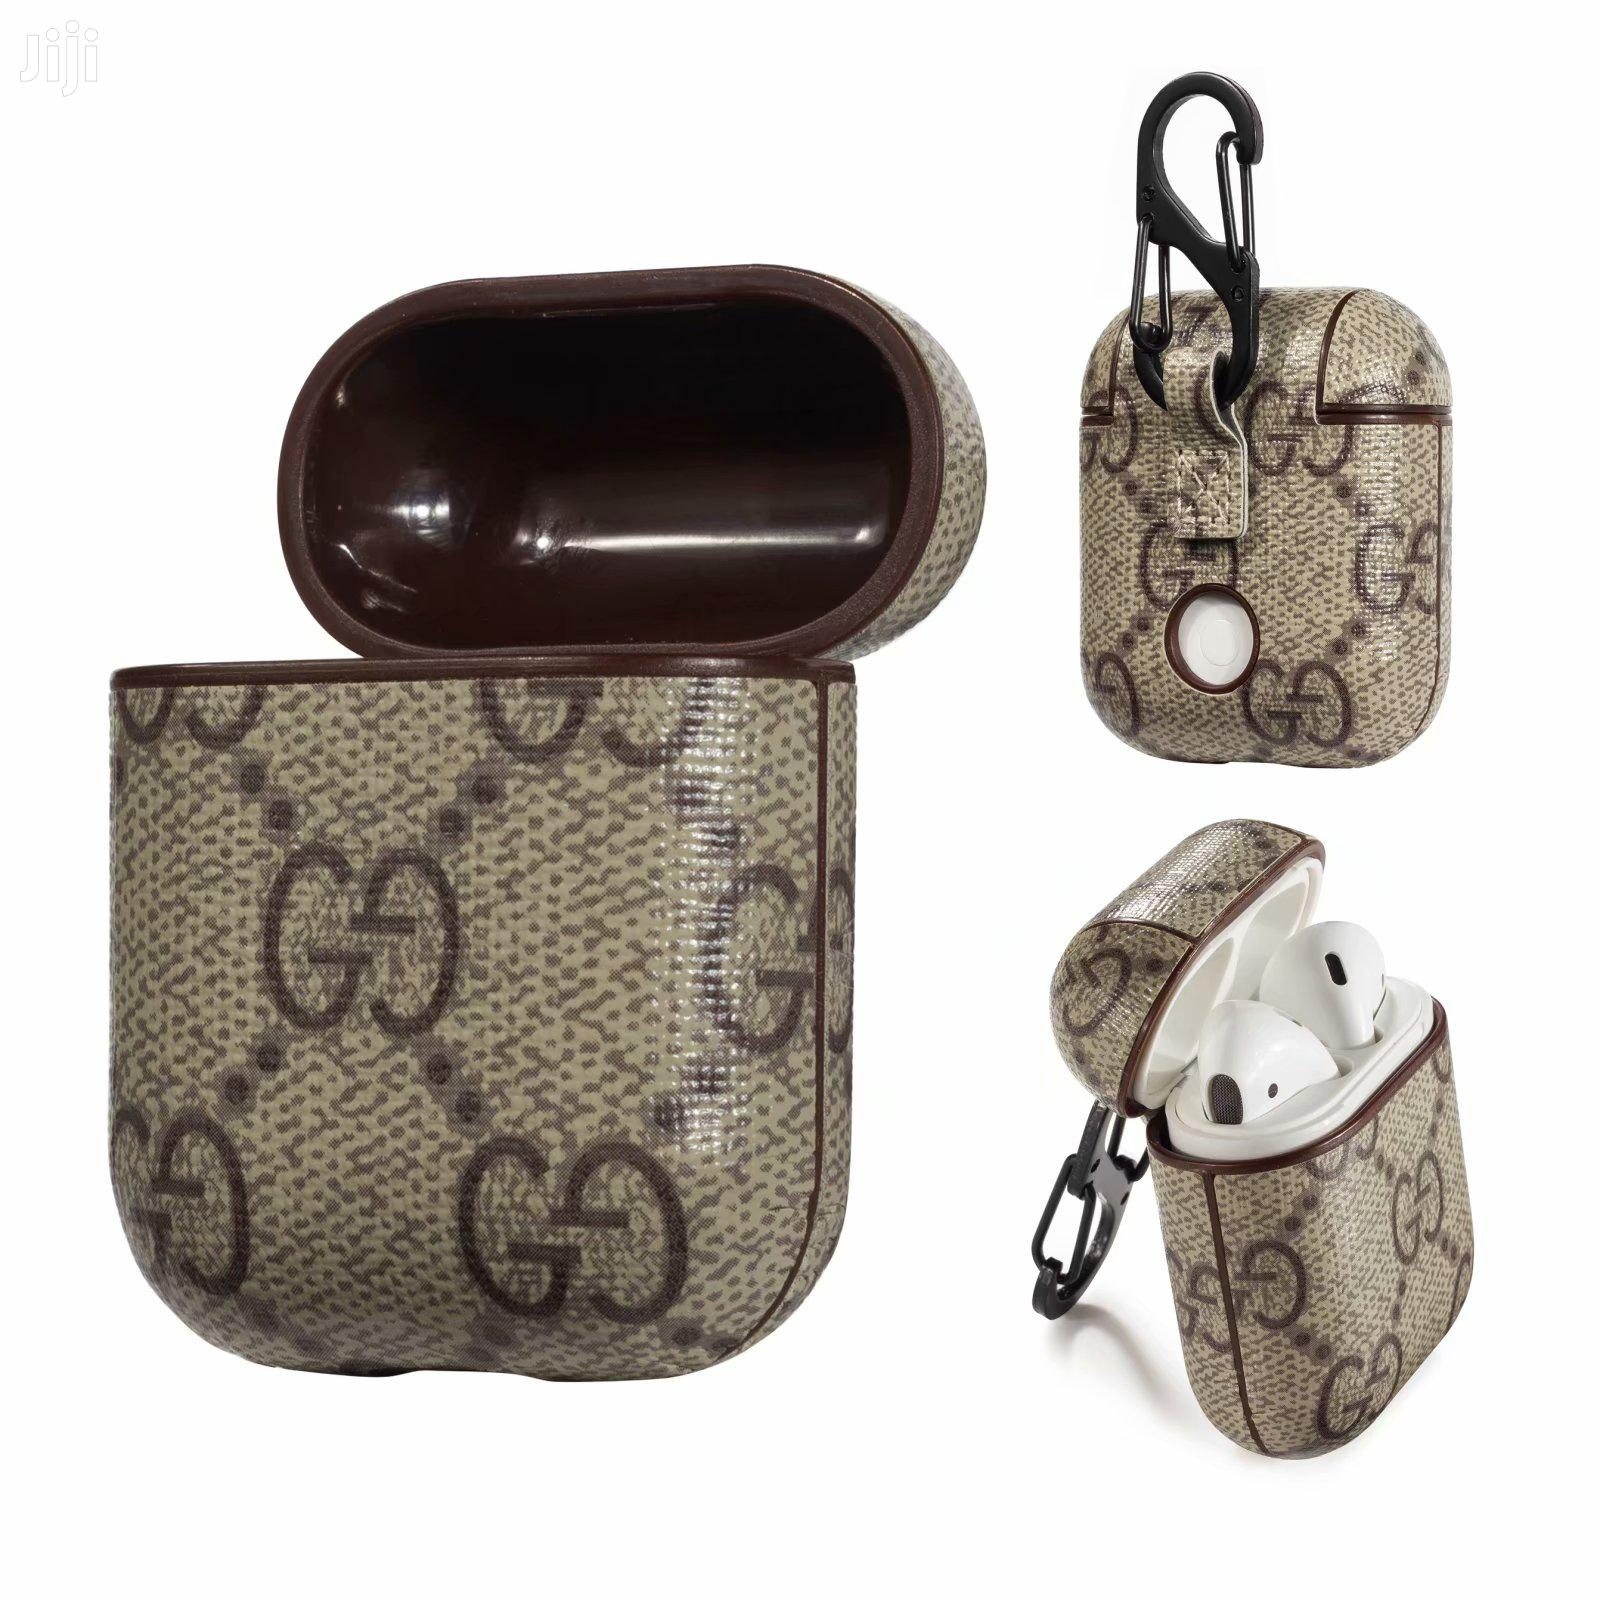 Gucci Airpods Case In Ikeja Accessories Supplies For